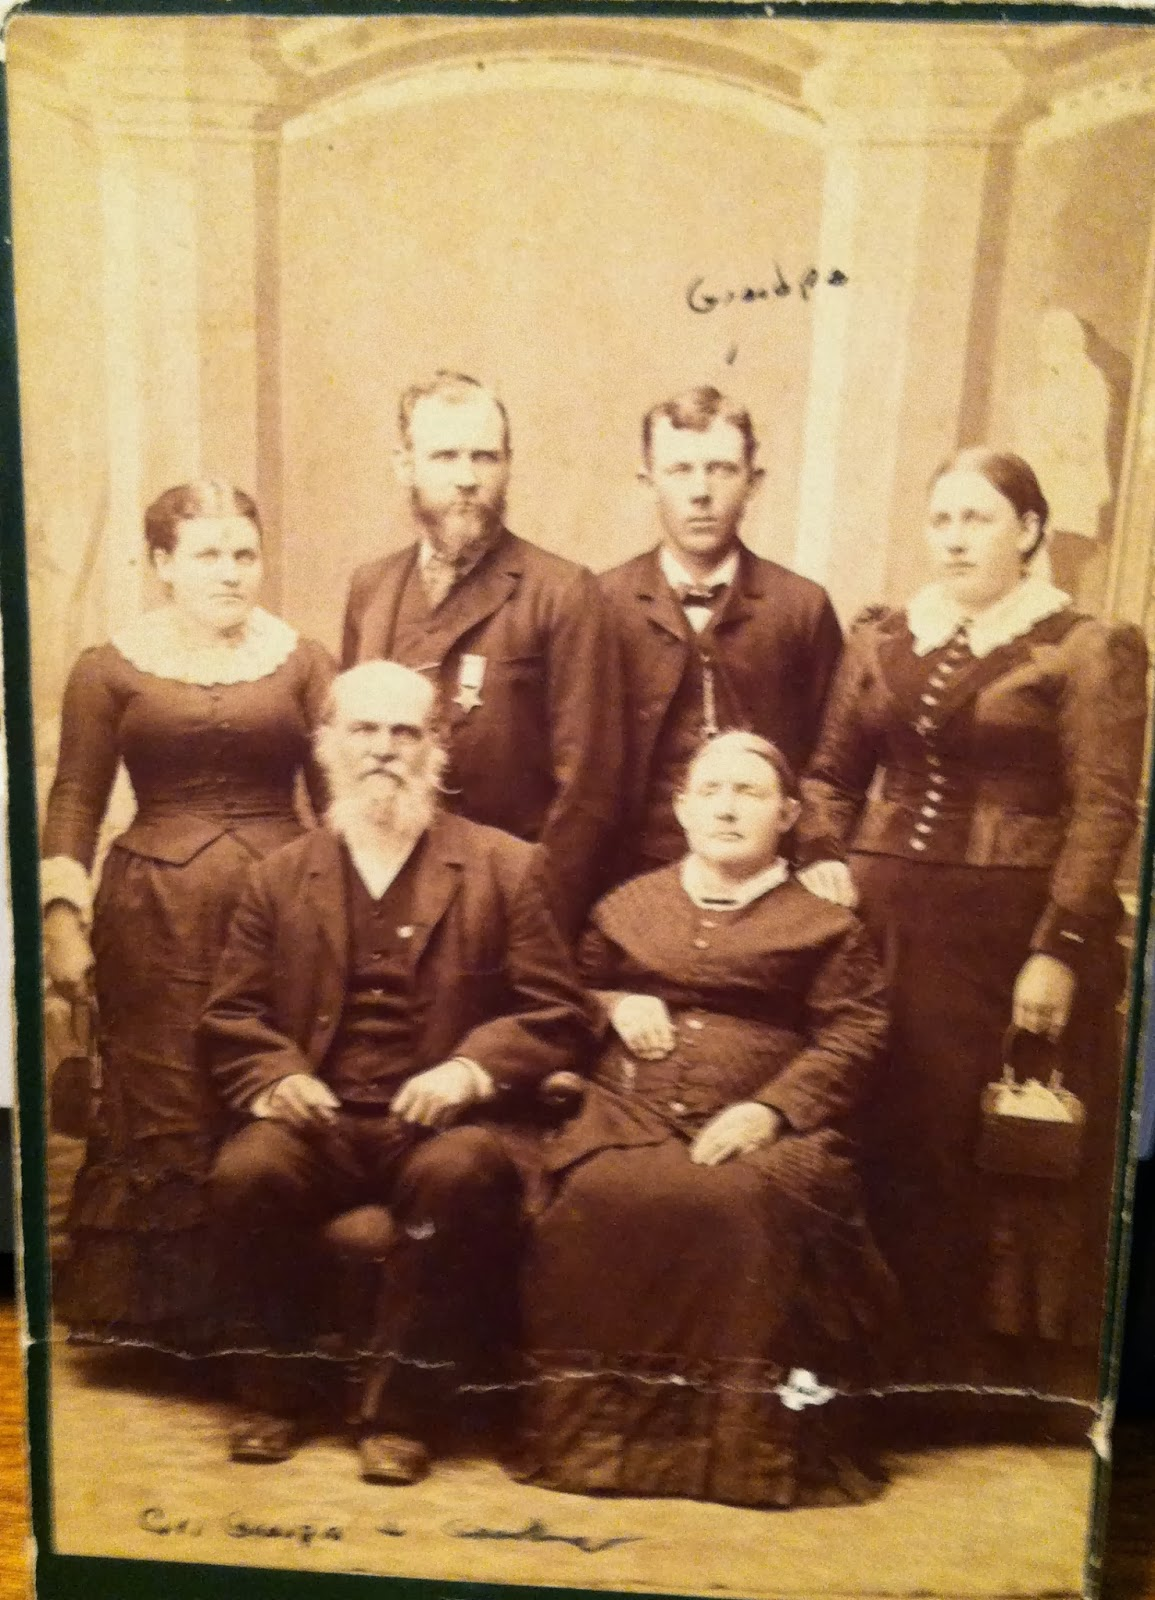 Climbing my Family Tree: Crawford Erwin & 2nd wife Rachel, with Angeline Erwin Britten, John Erwin, Edward Everett Erwin, and Elizabeth Adeline Erwin Kenley Henderson